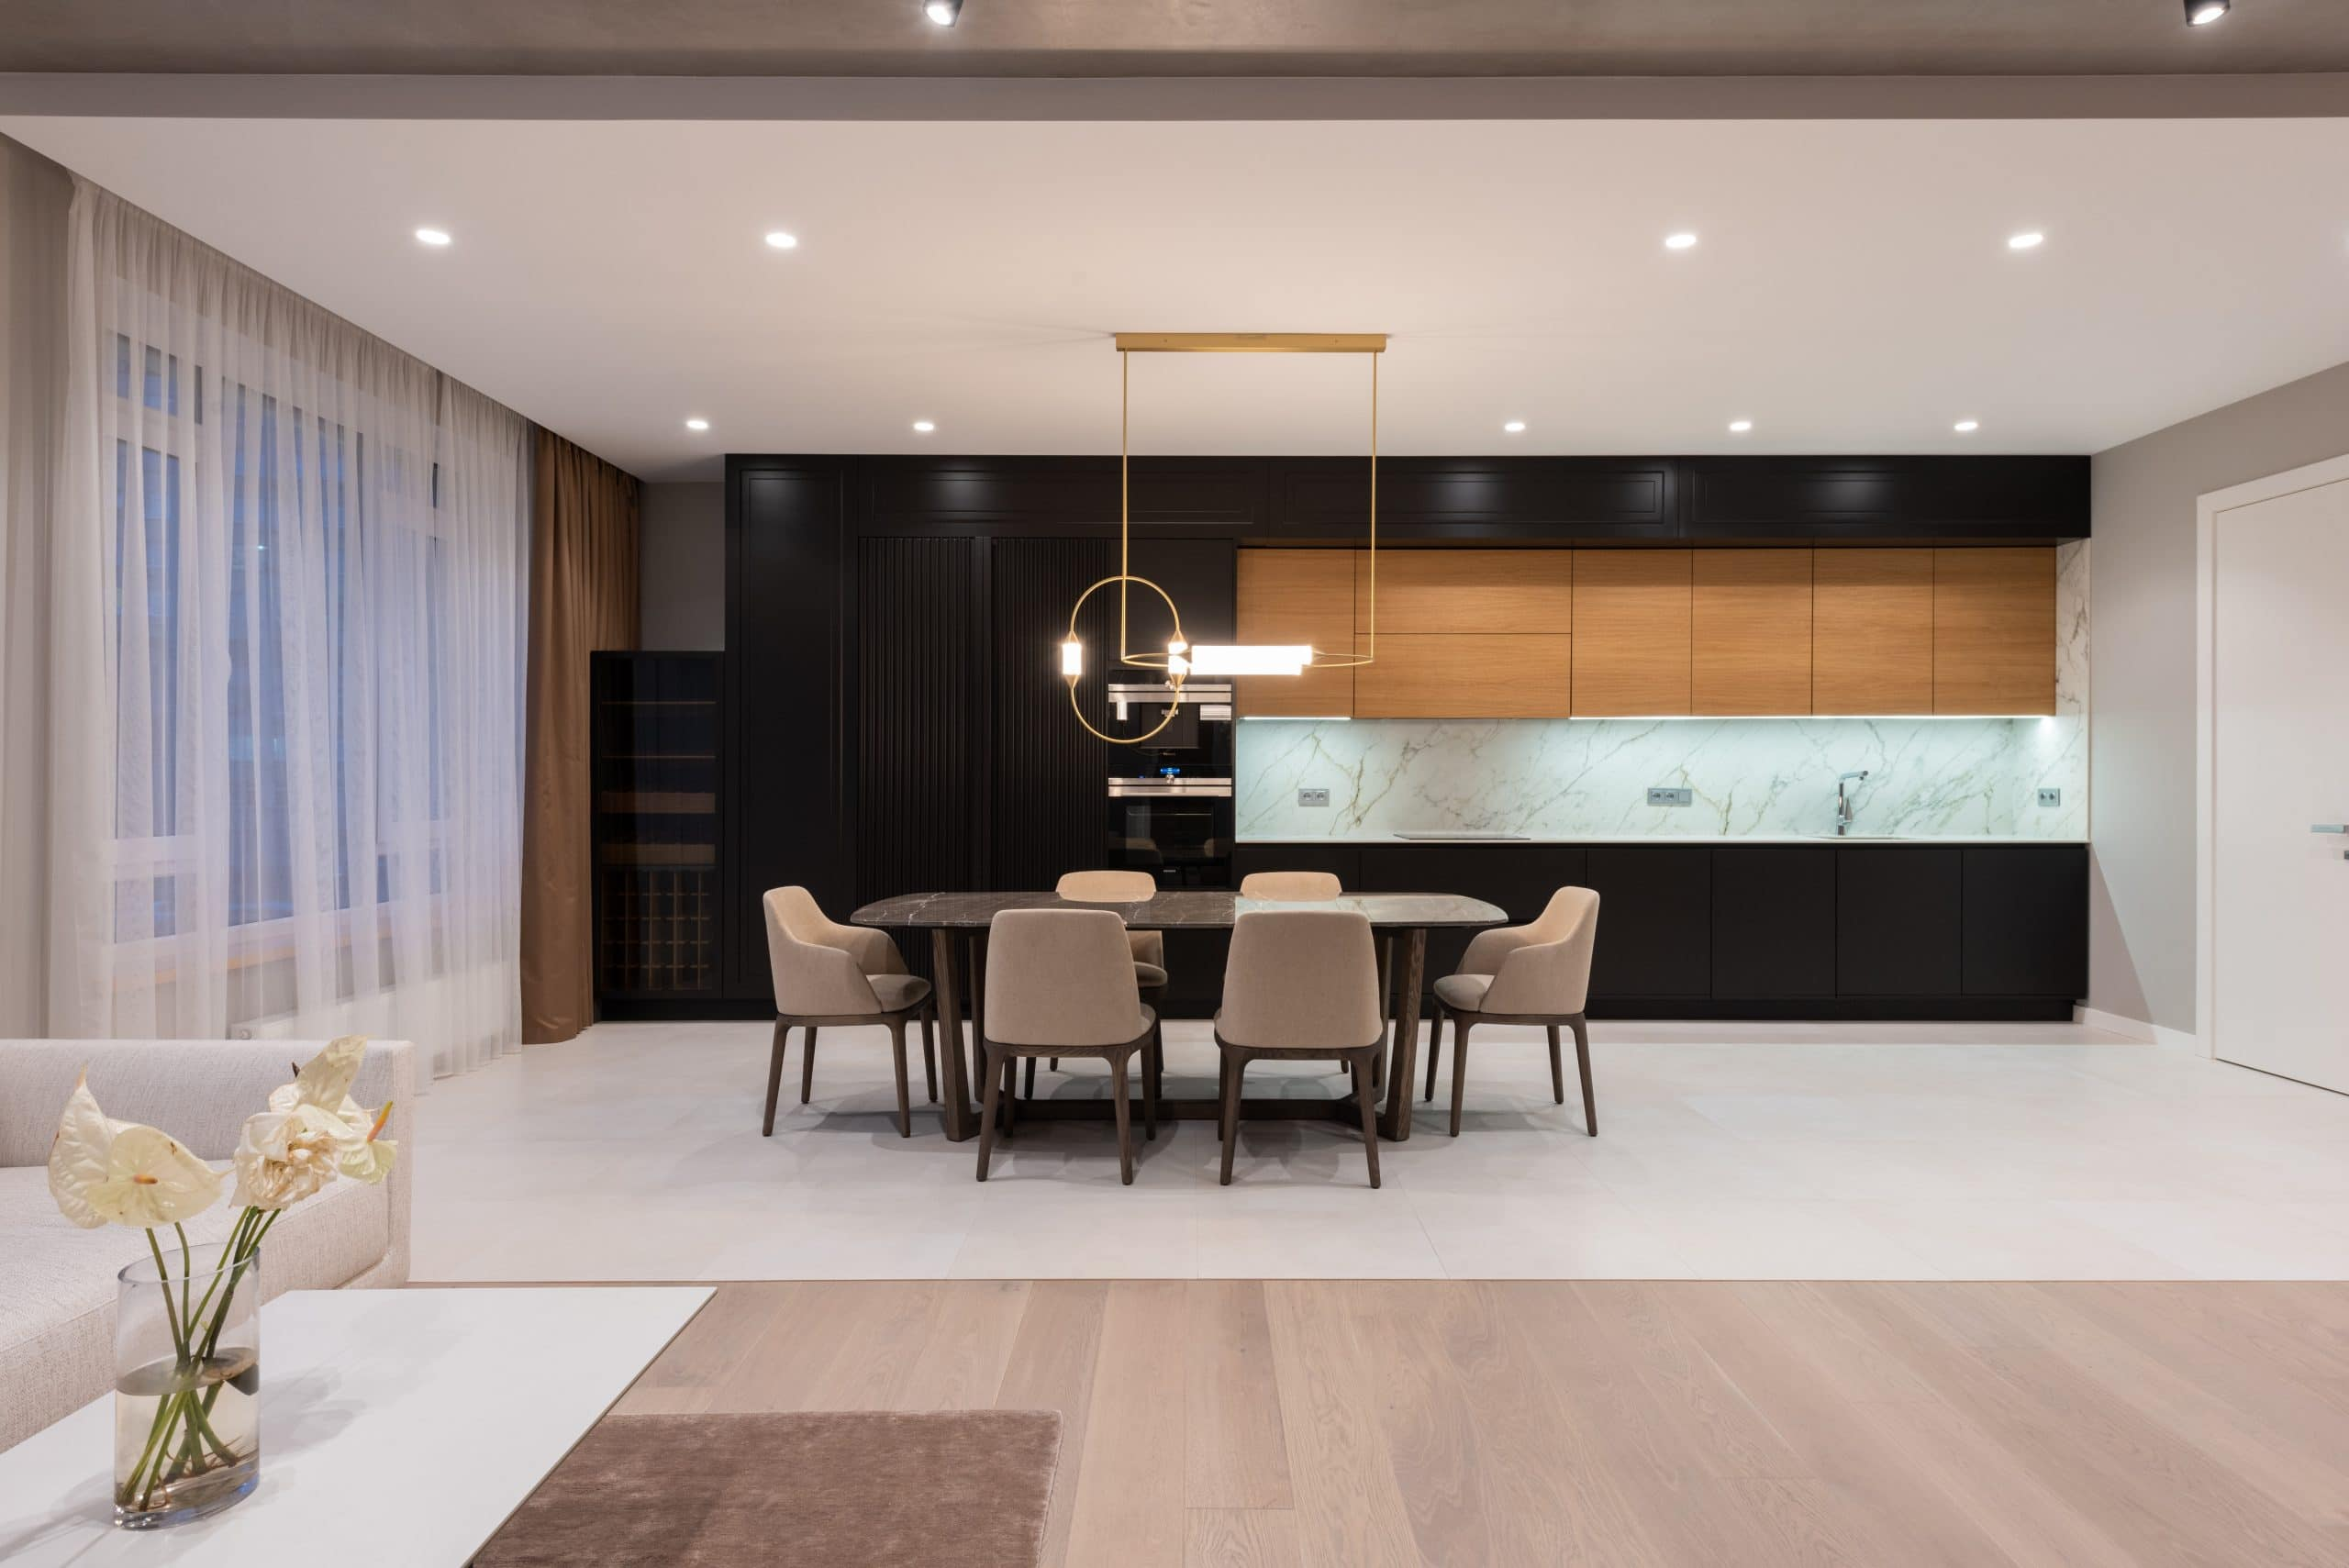 Kitchen recessed lighting placement